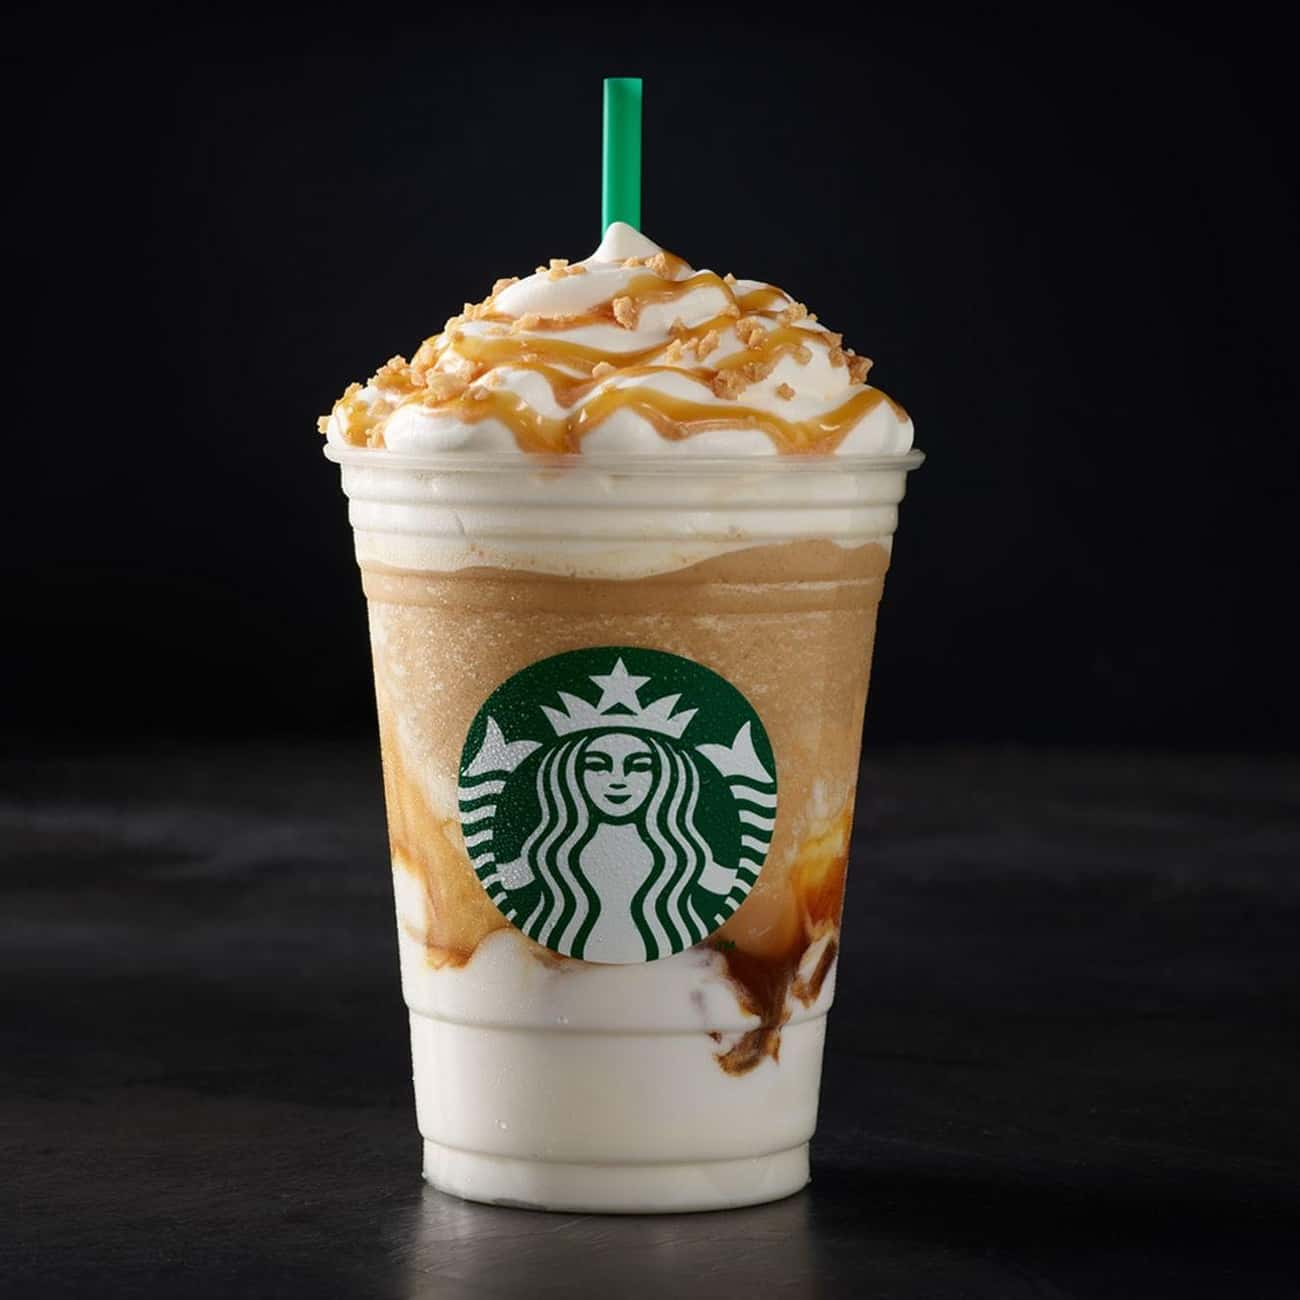 Caramel Ribbon Crunch Frappucc is listed (or ranked) 3 on the list The Best Frappuccino Flavors At Starbucks